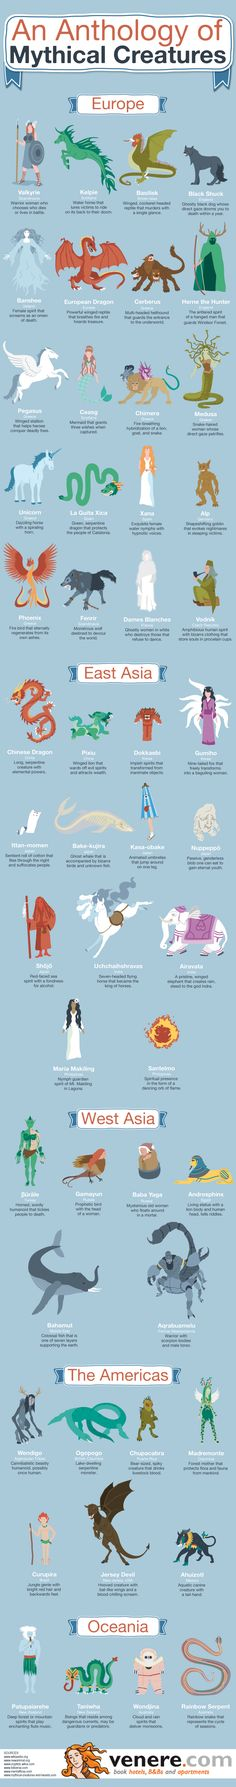 The World's Mythical Creatures